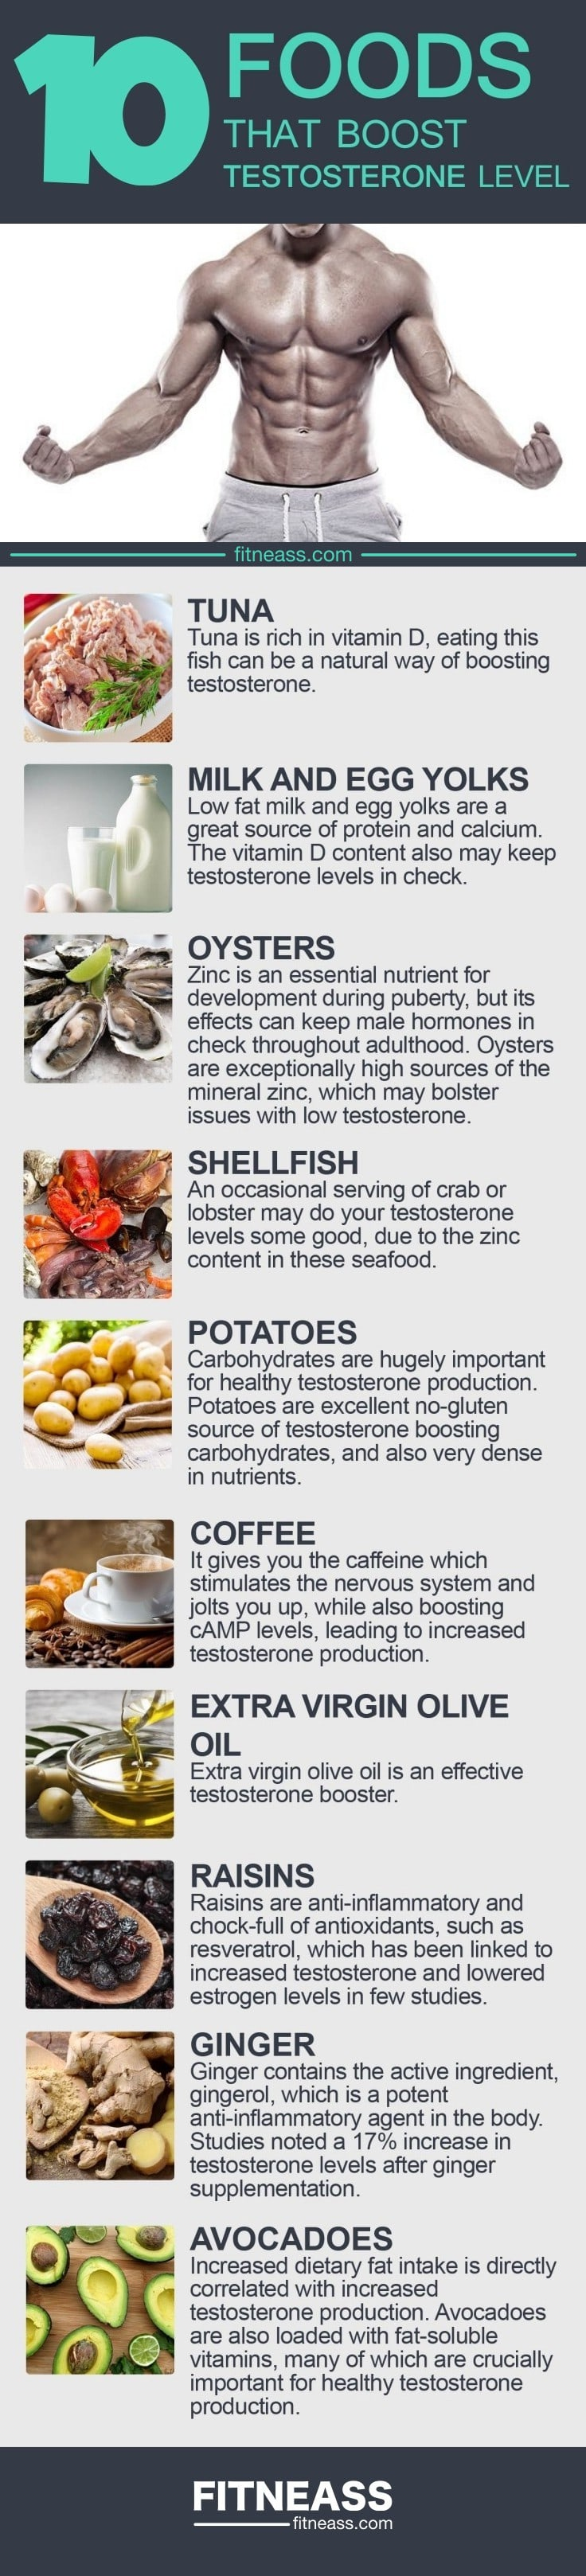 10 Foods That Boost Testosterone Level